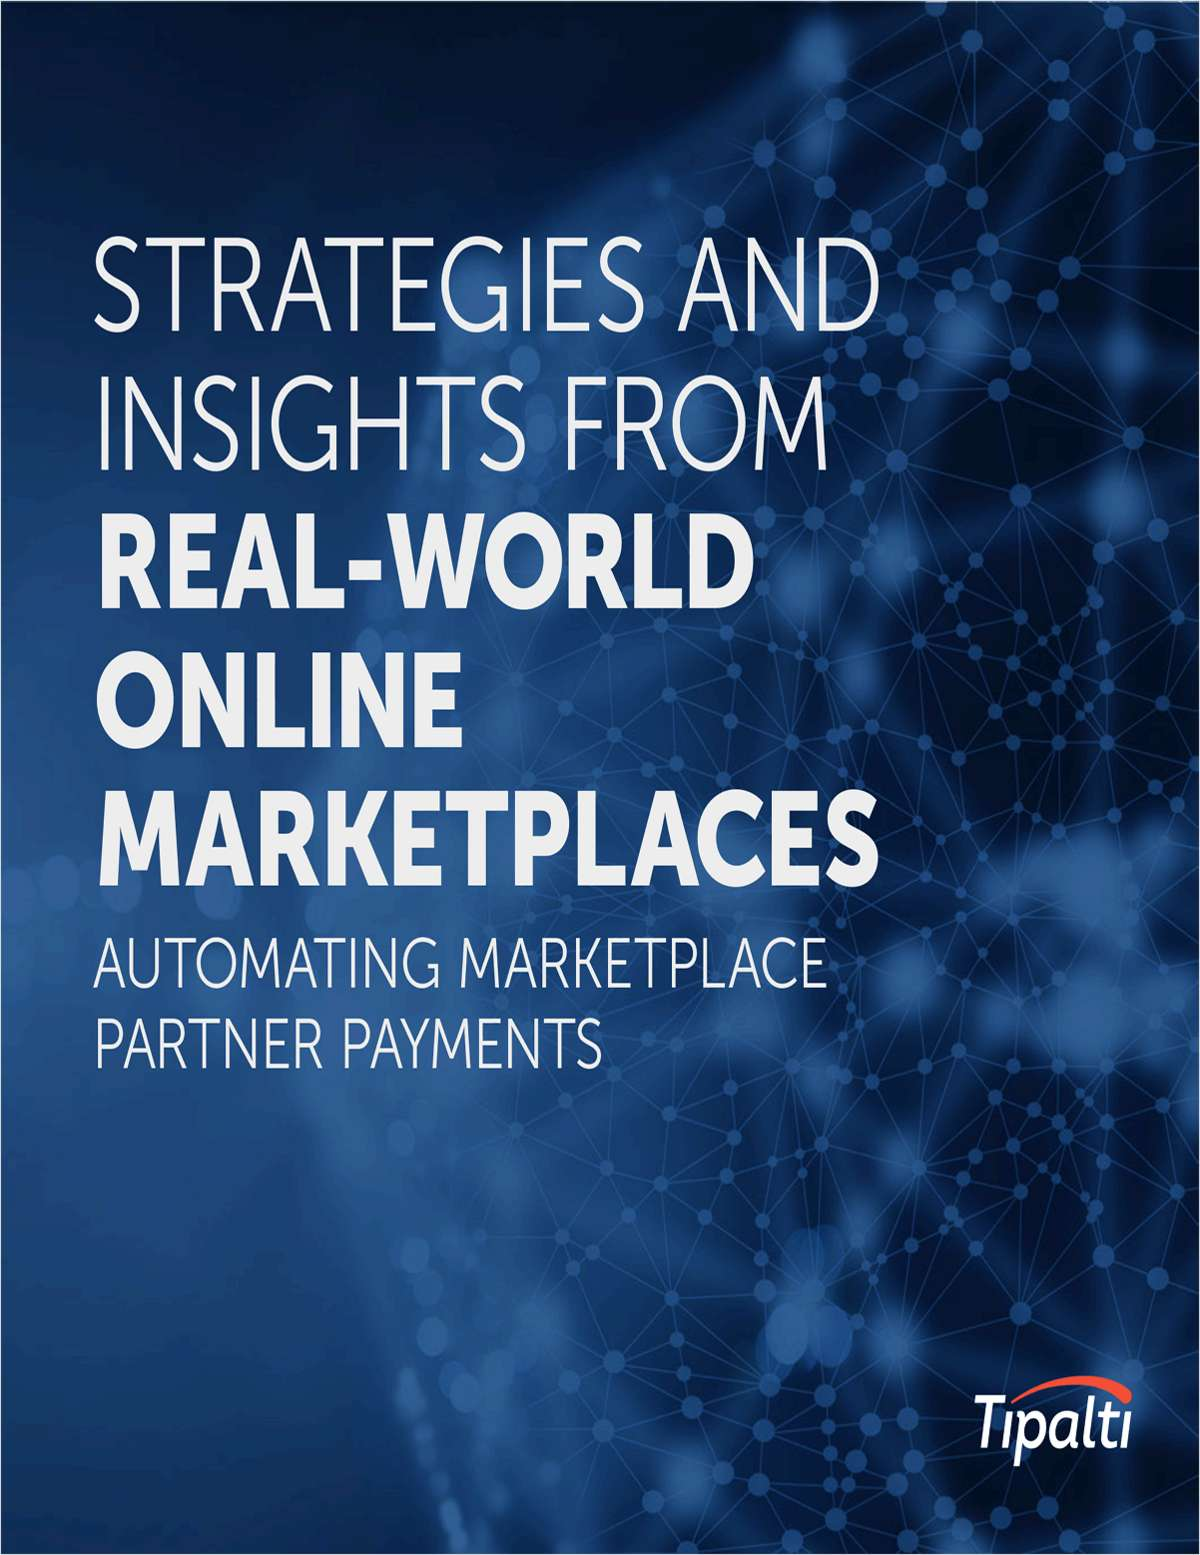 Strategies and Insights from Real-World Online Marketplaces